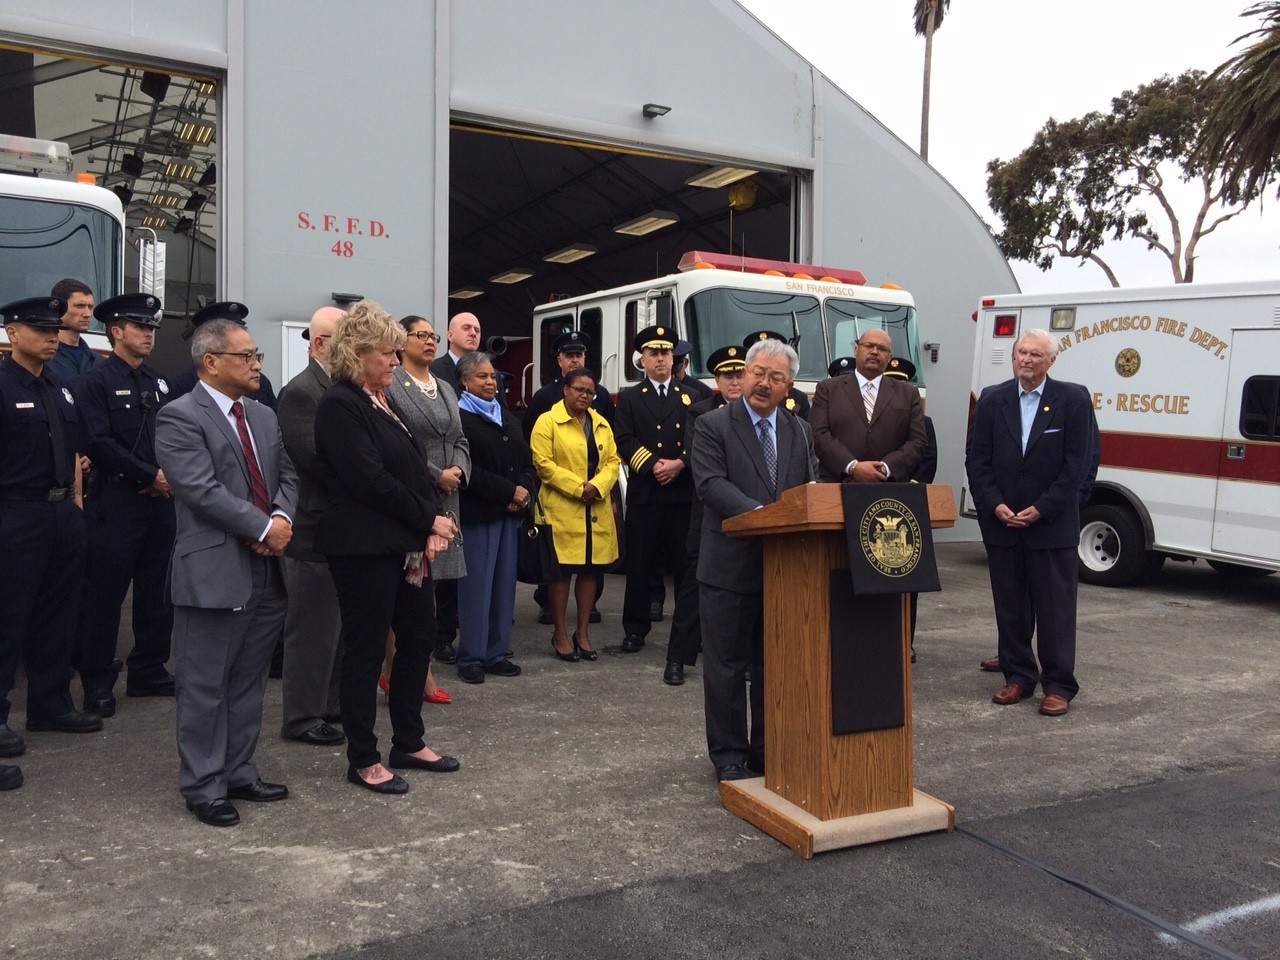 Mayor Lee Proposes $47.3M Funding for SFFD, Emergency Services